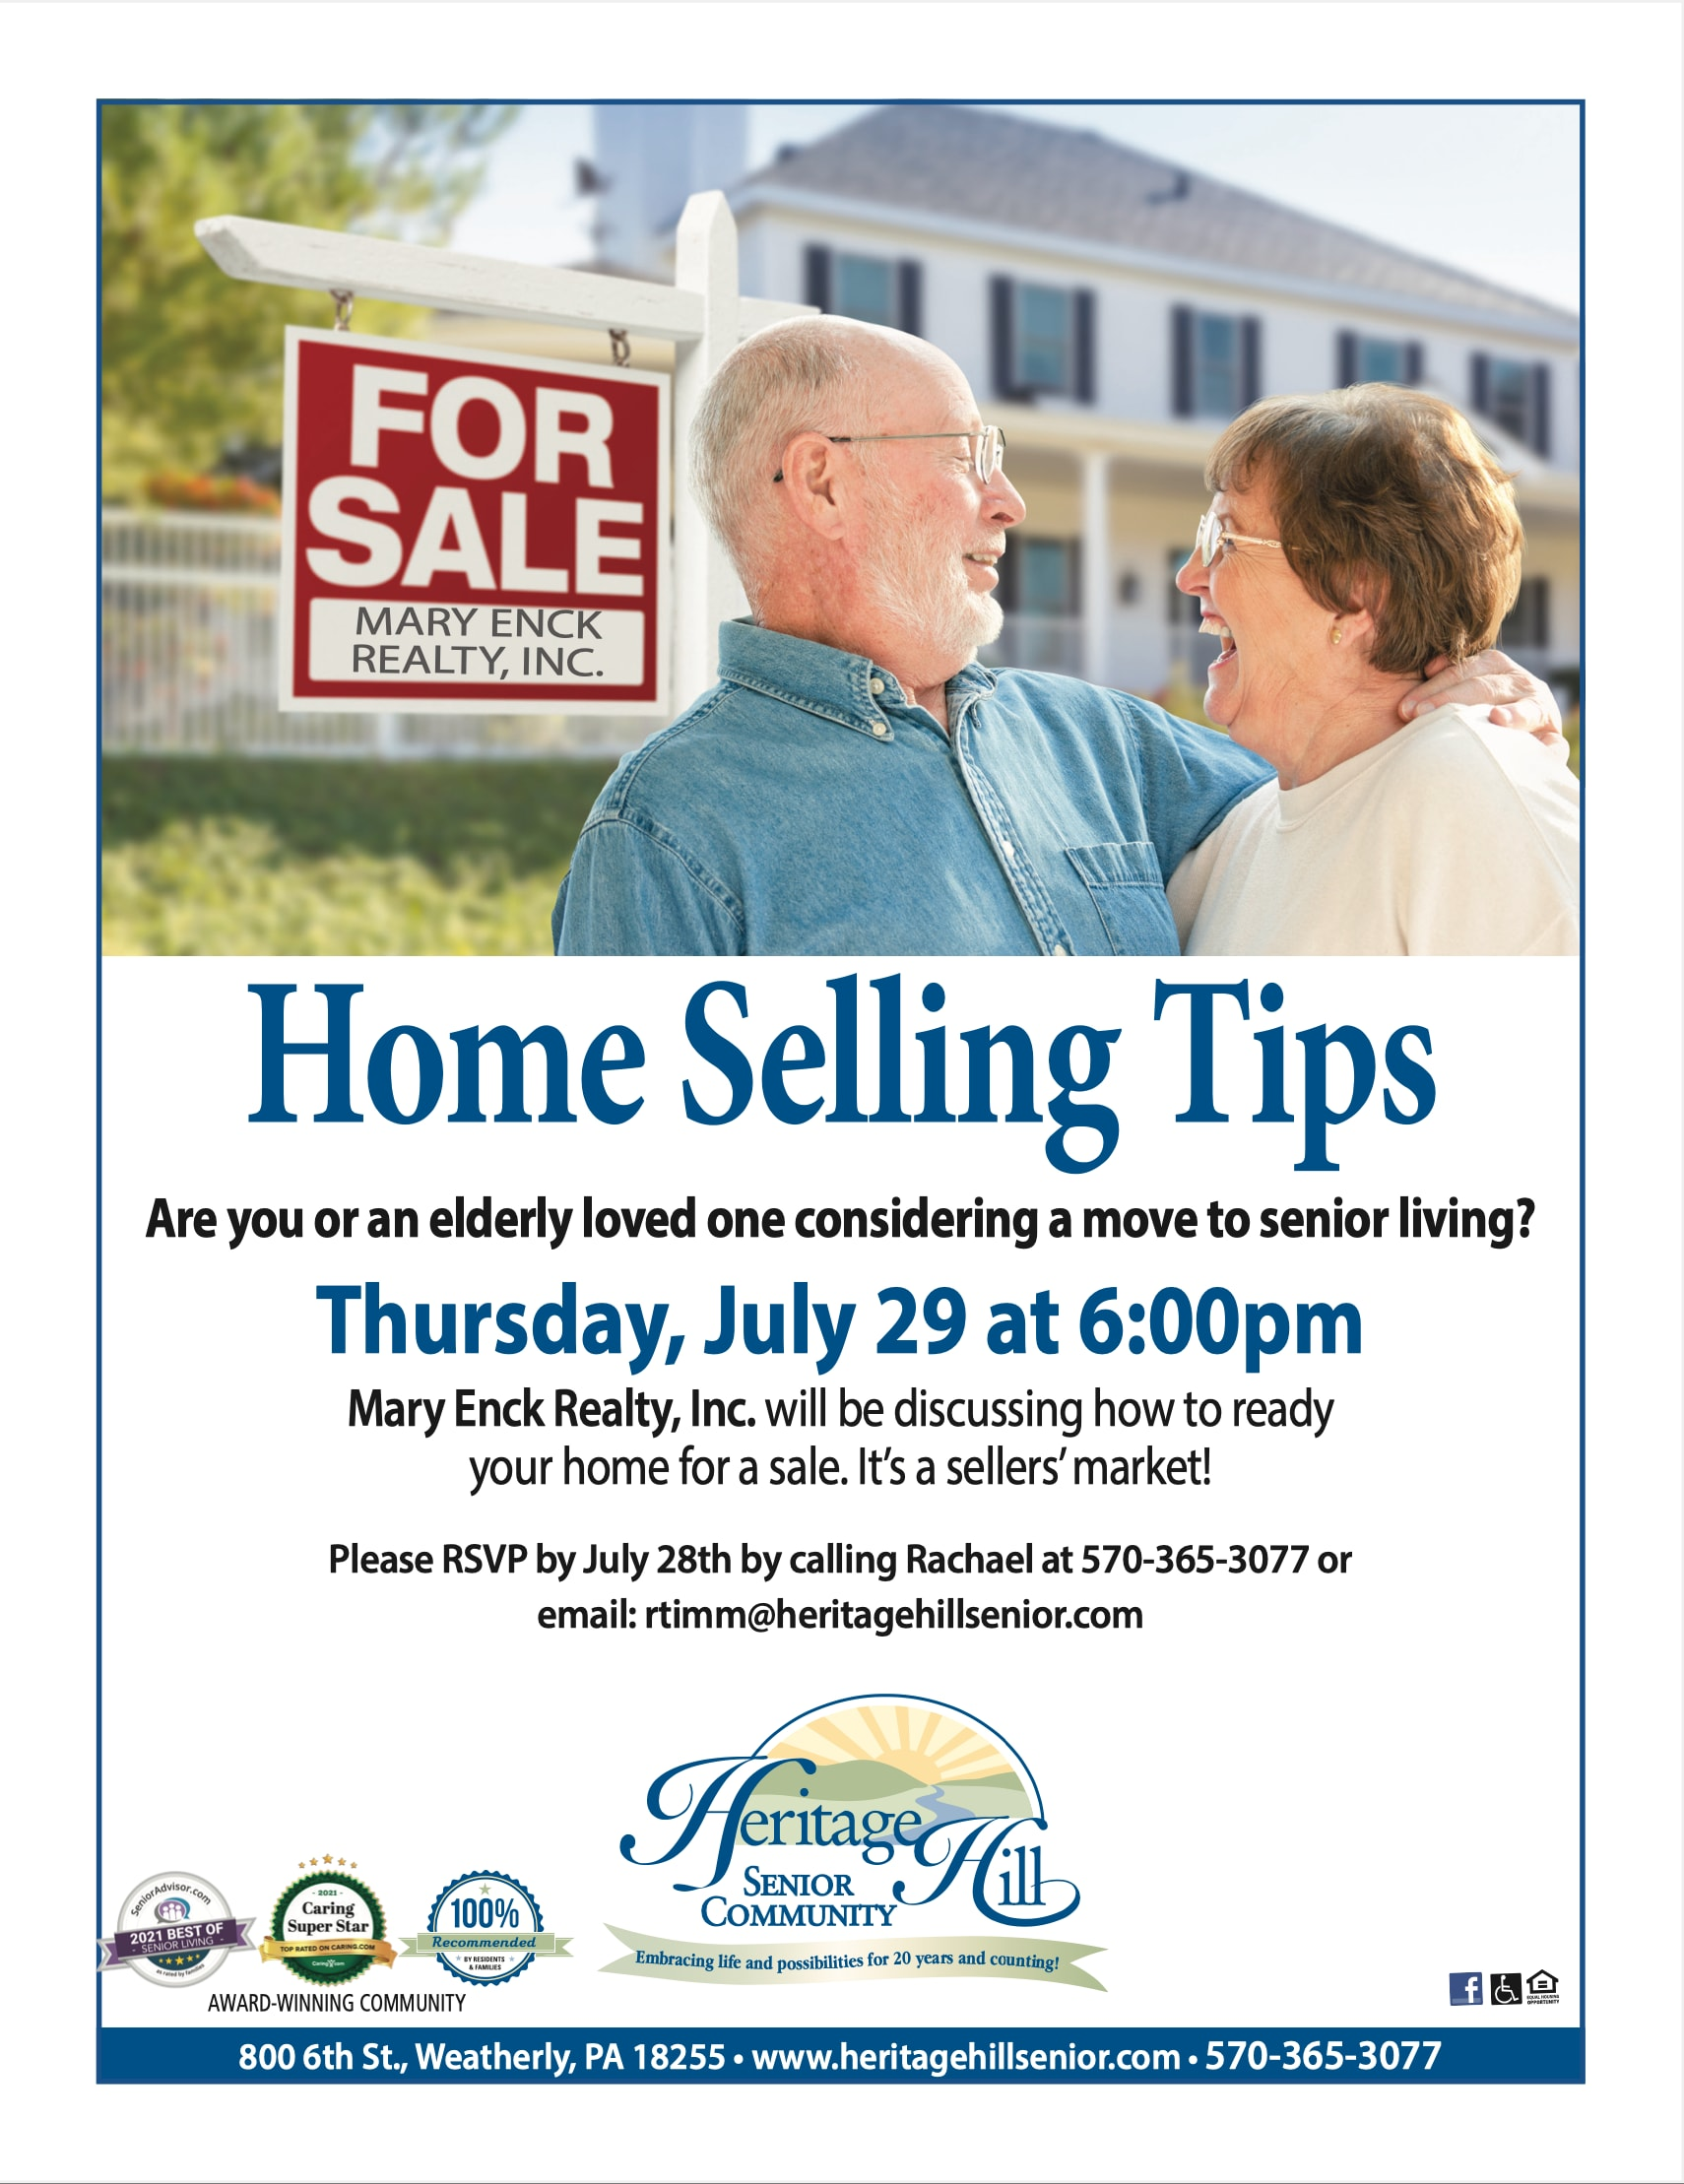 Home Selling Tips Flyer - June 29th, 2021 at 6:00pm